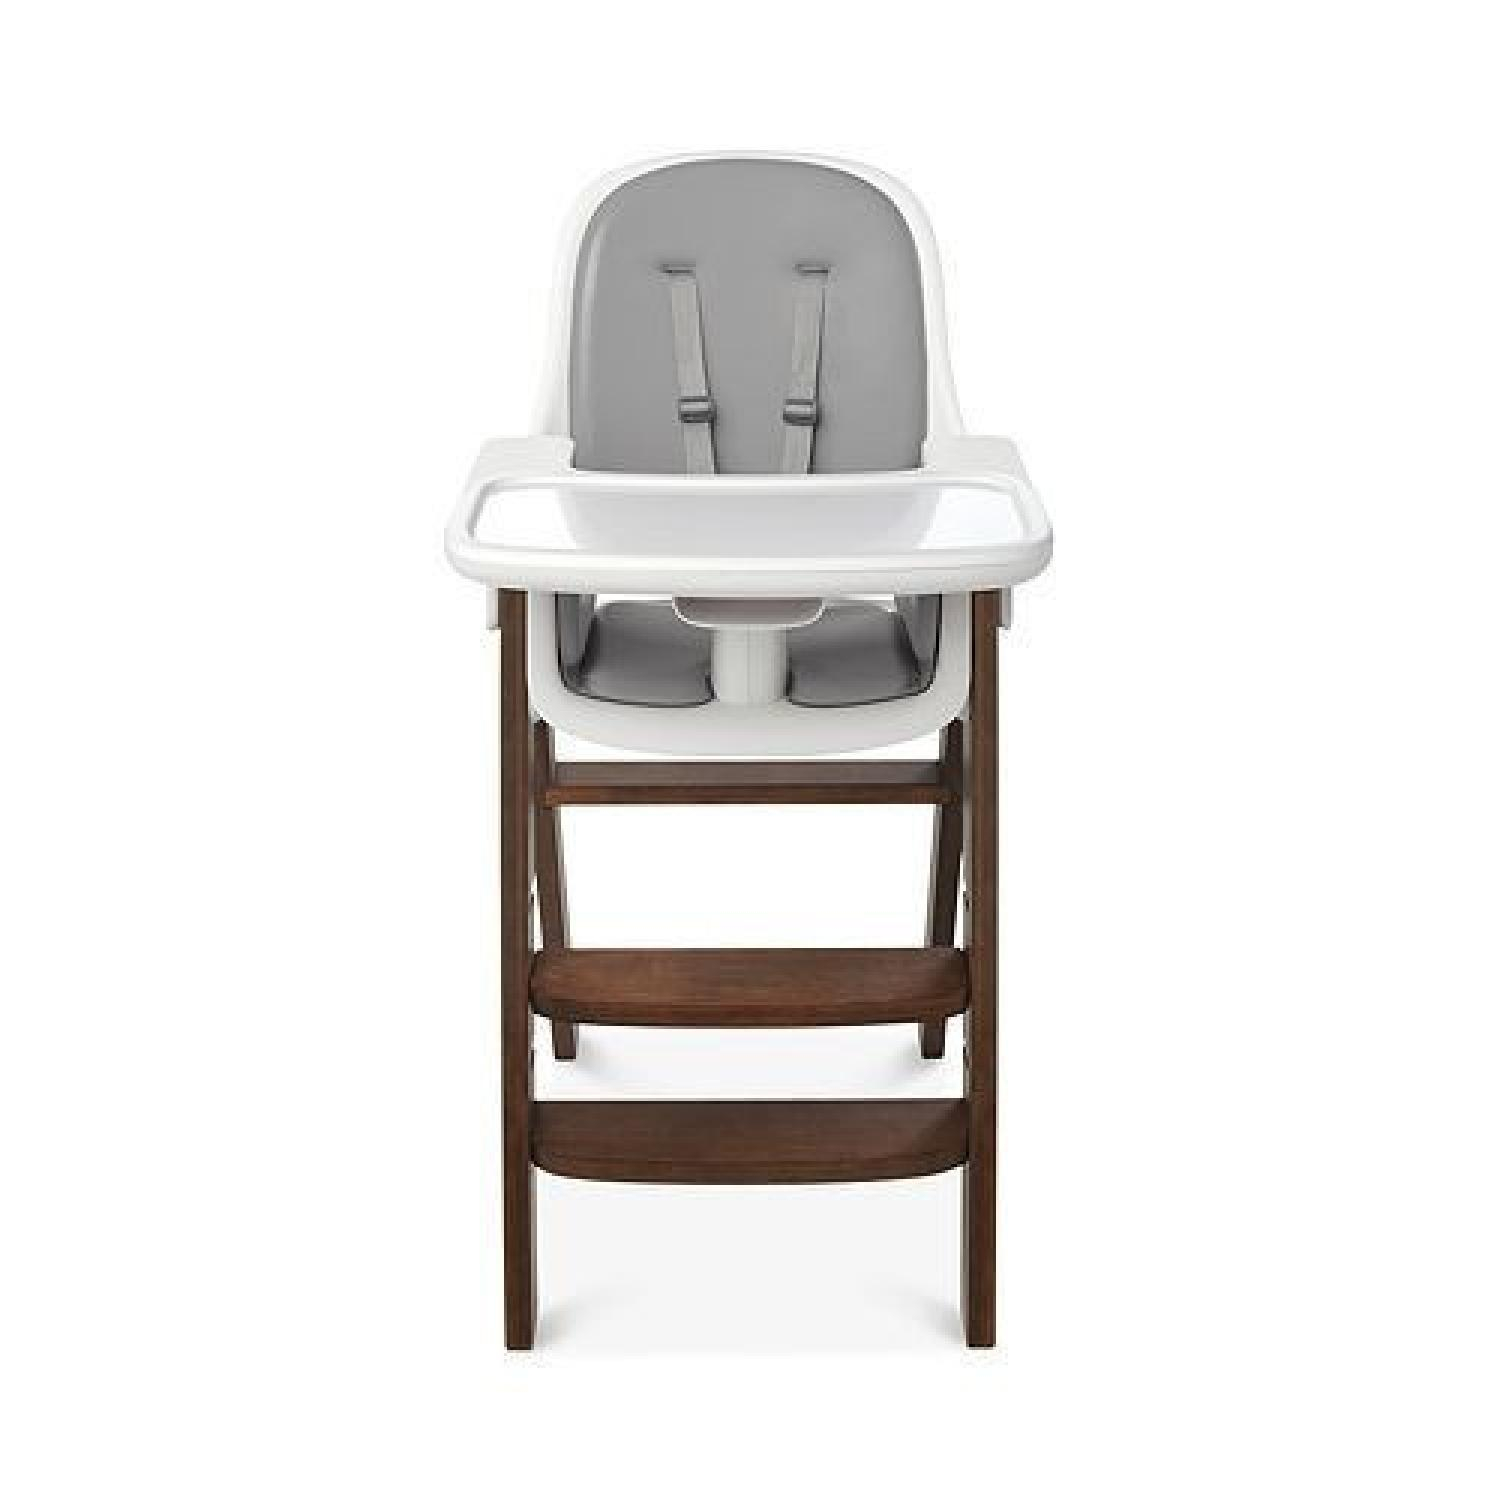 Oxo Sprout Tot High Chair - image-0